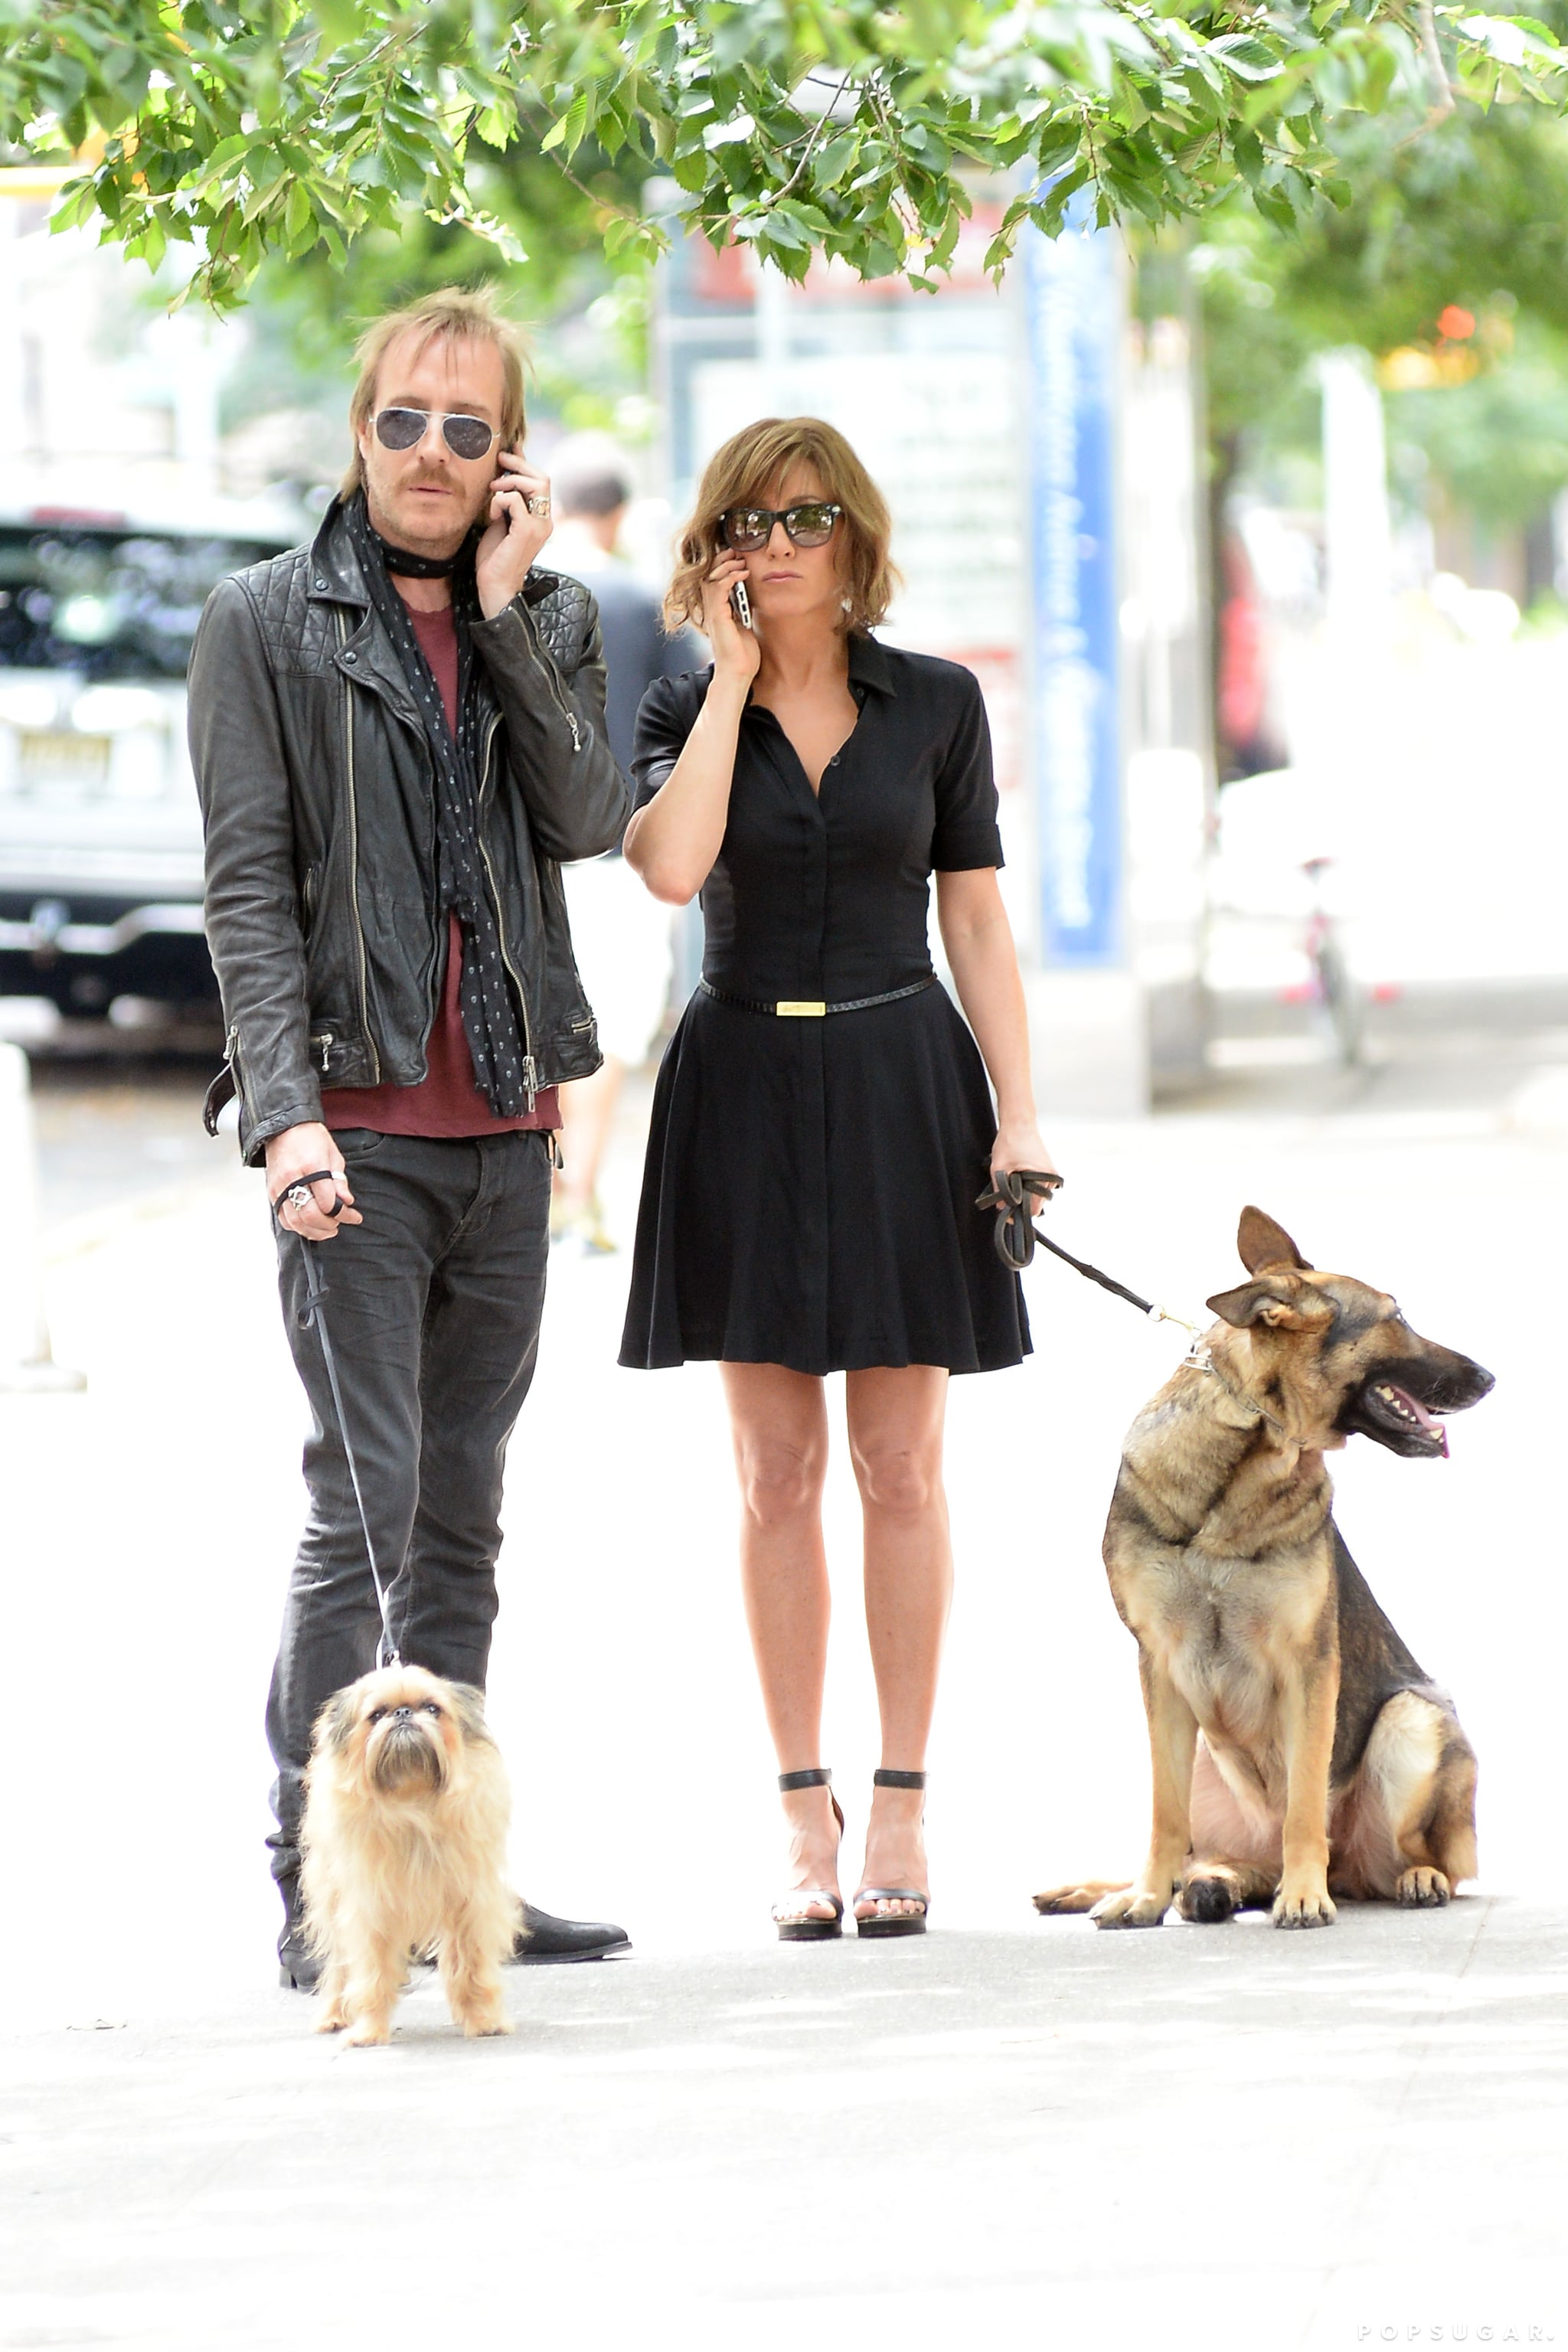 Jennifer Aniston and Rhys Ifans fielded phone calls and handled dogs on set in NYC on July 31.